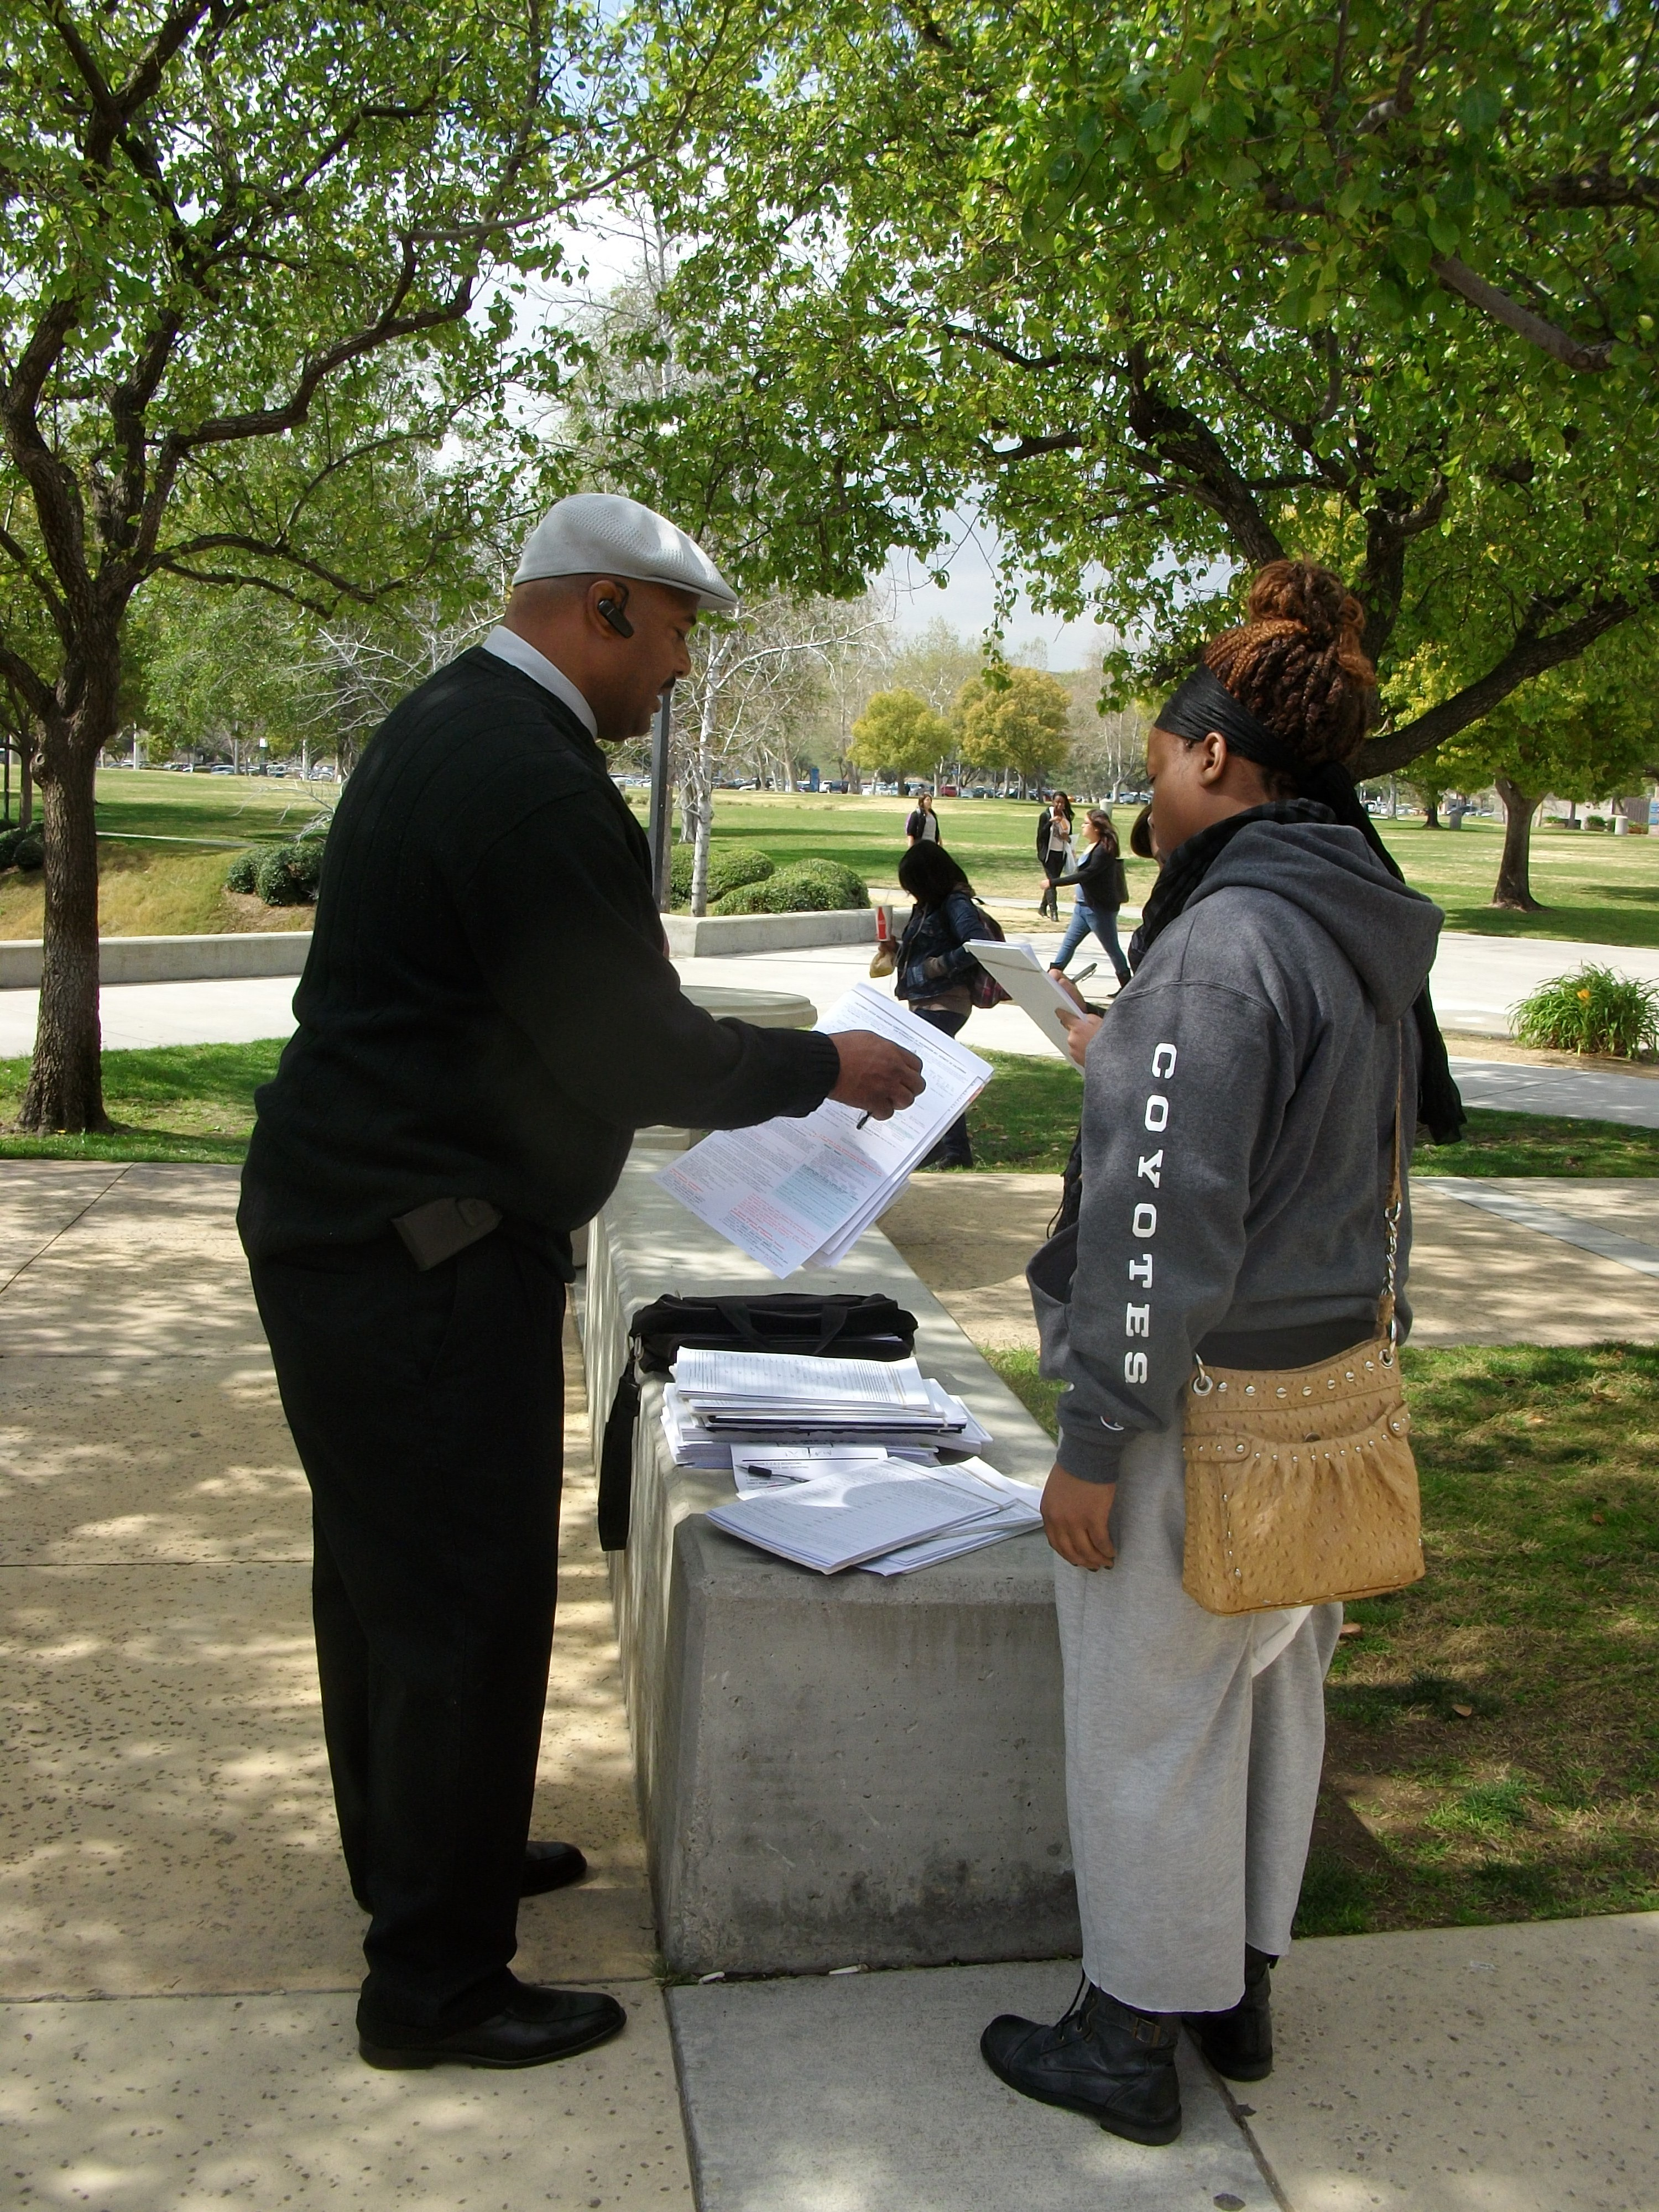 Petition peddlers too prevelant on campus